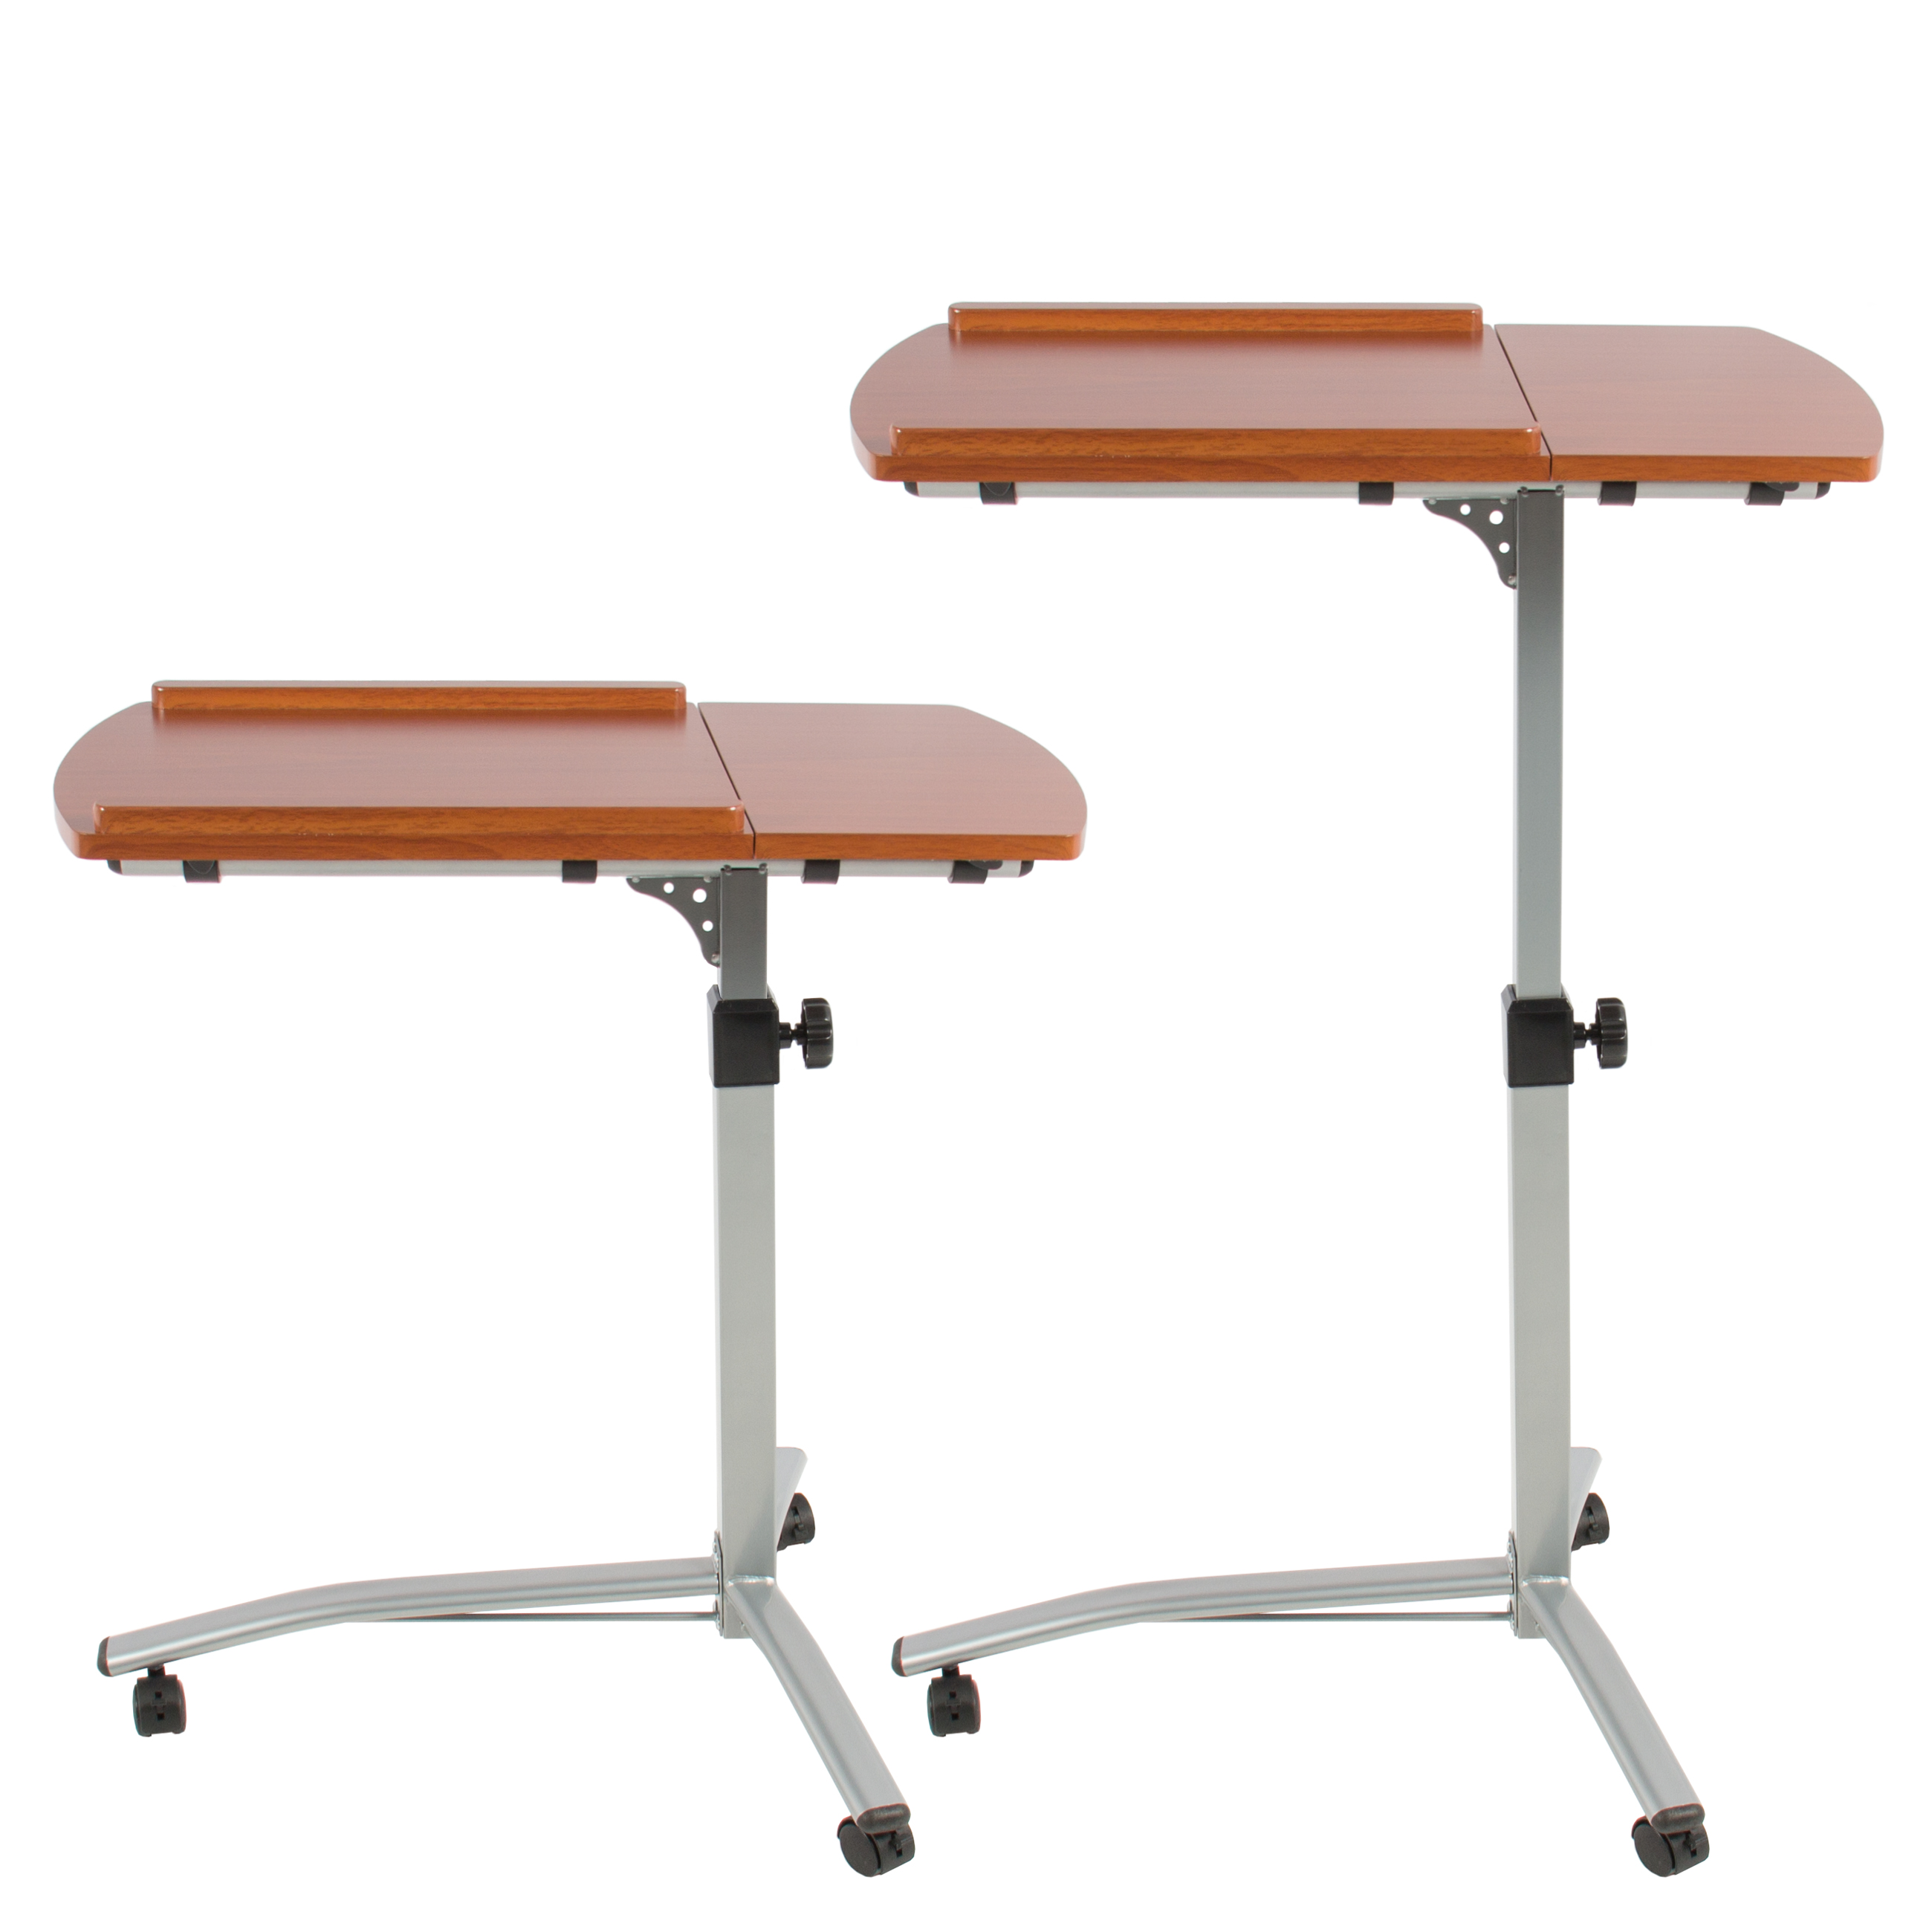 angle u0026 height adjustable rolling laptop desk cart over bed hospital table stand walmartcom